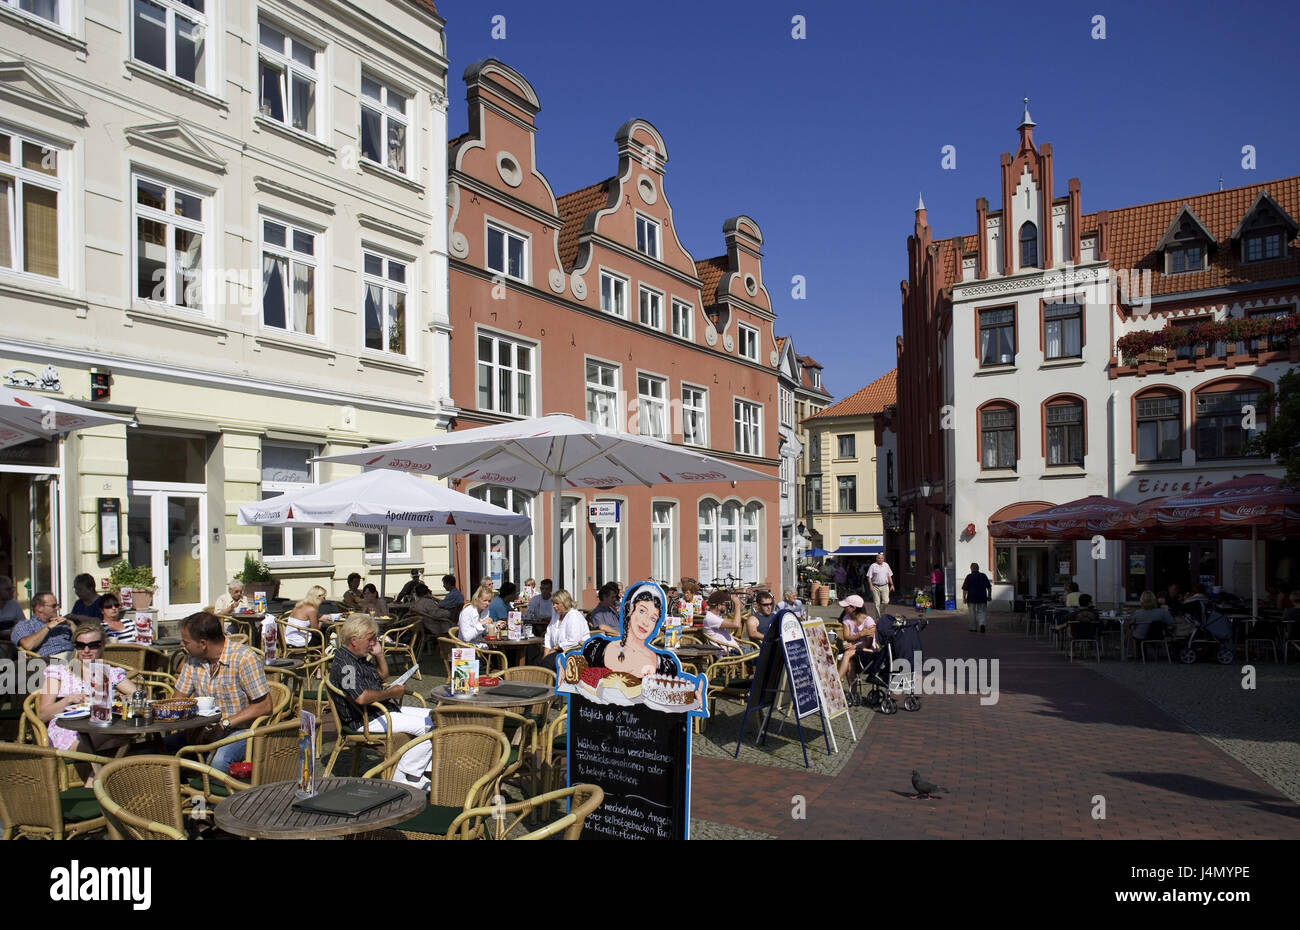 Germany, Mecklenburg-West Pomerania, Hanseatic town Wismar, marketplace, street bars, guests, - Stock Image